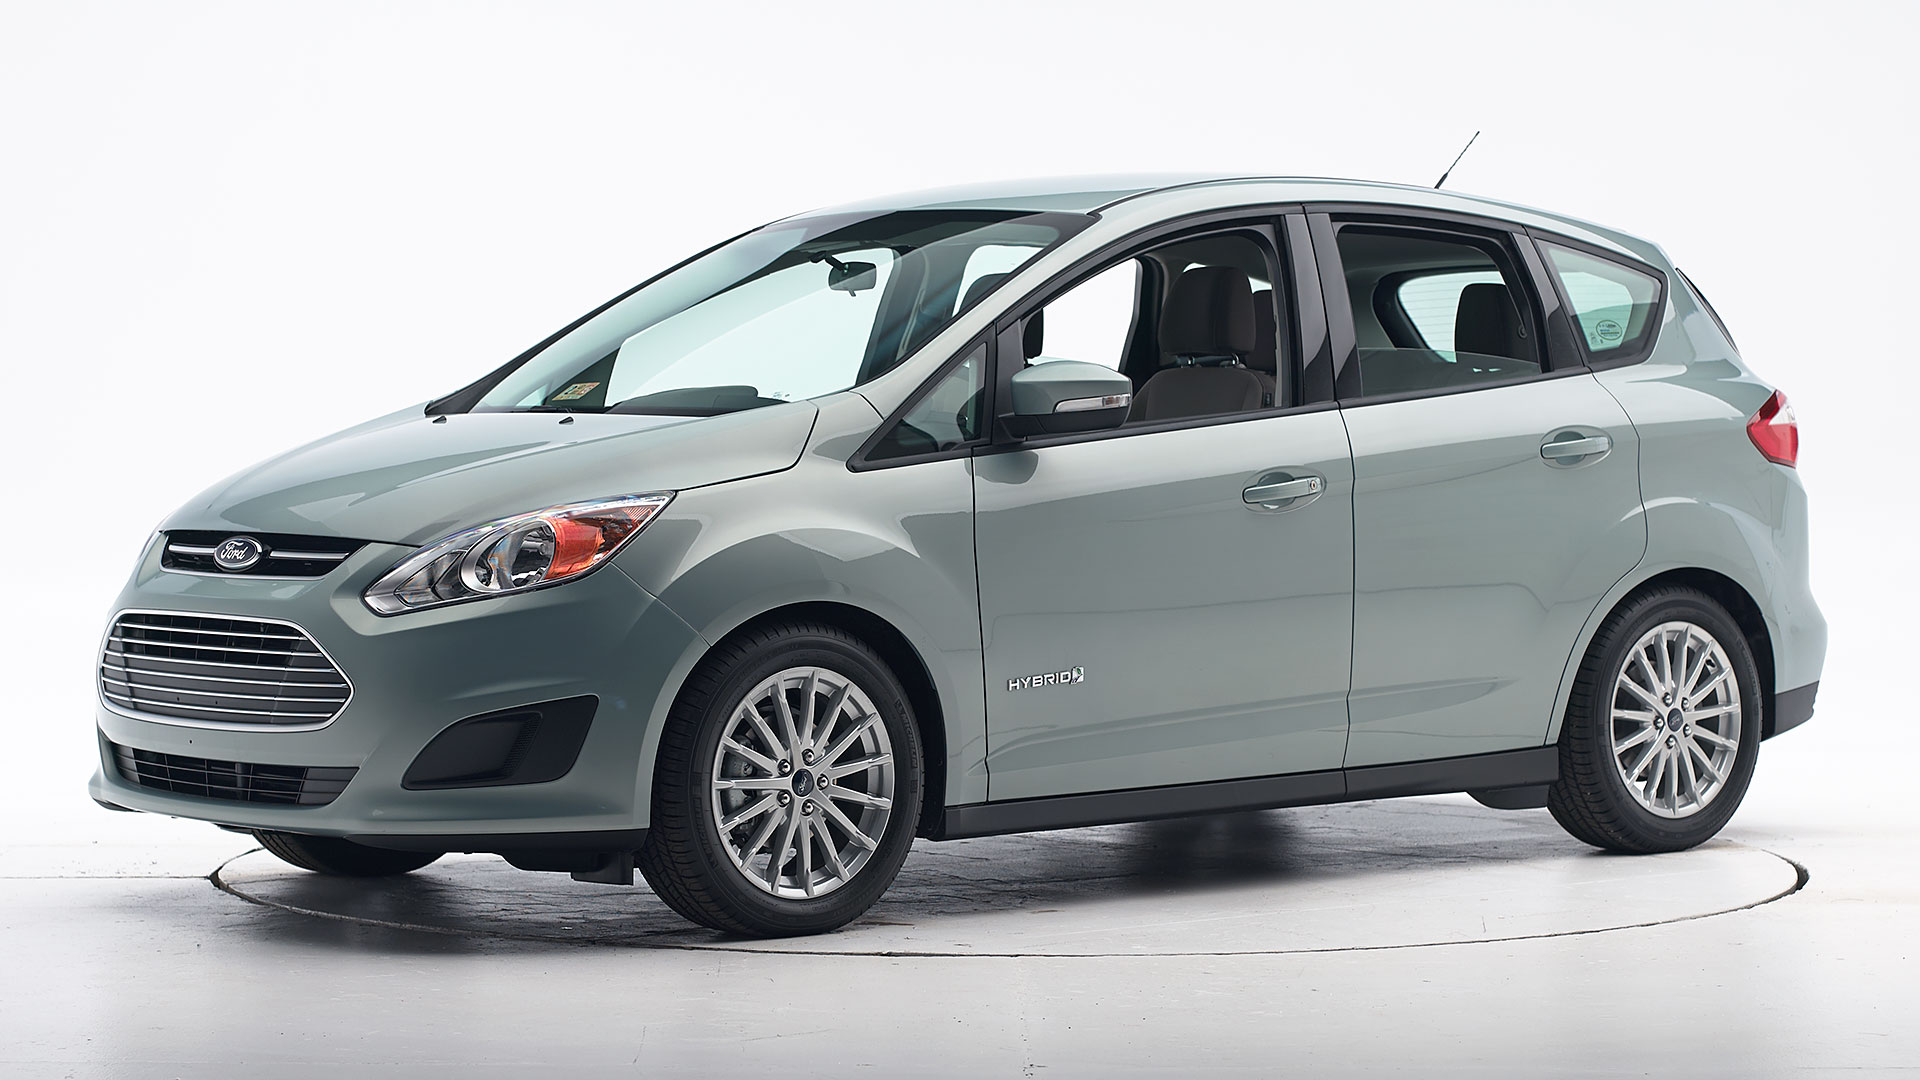 2015 Ford C-Max Hybrid 4-door wagon